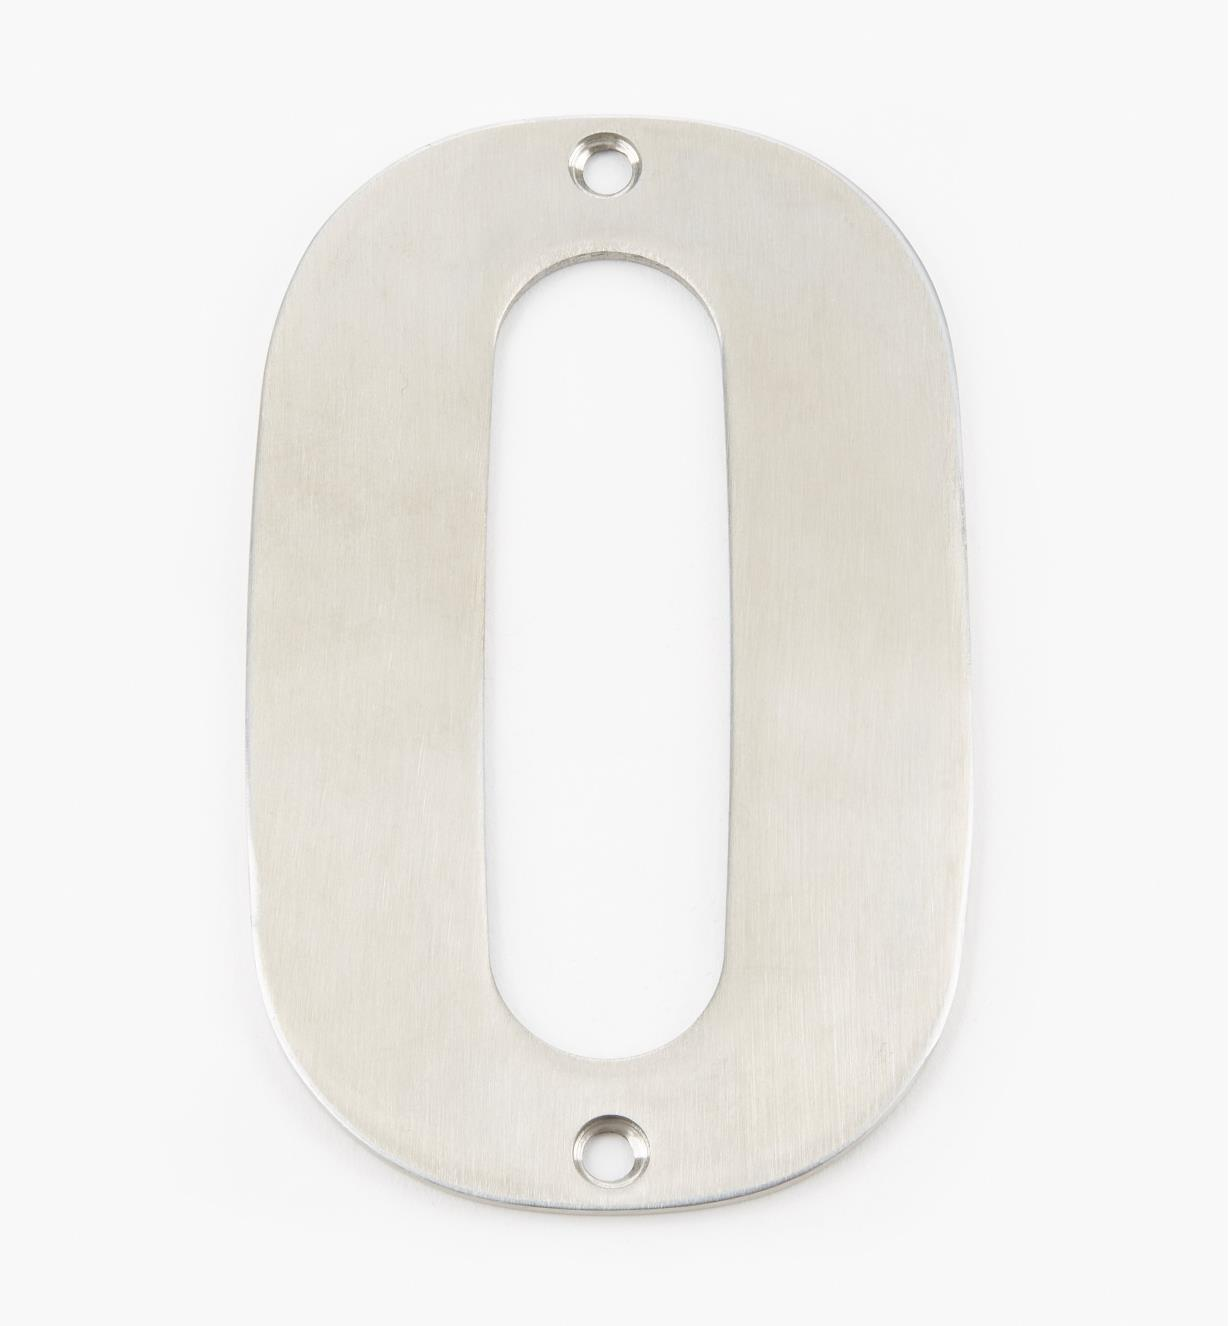 00W0890 - 130mm Stainless-Steel House Number - 0